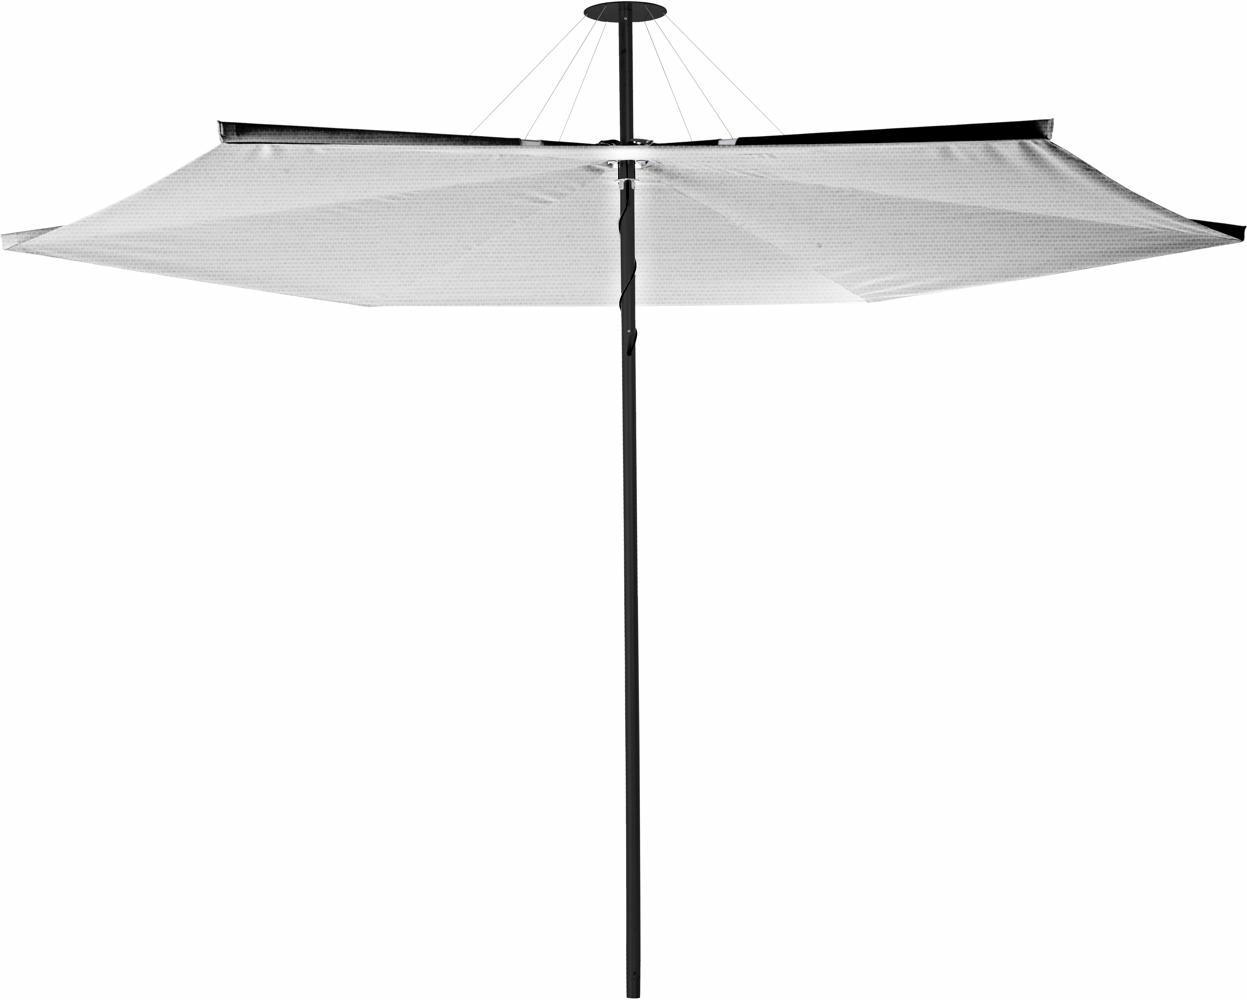 Infina center post umbrella, 3 m round, with frame in Dusk and Solidum Marble canopy.